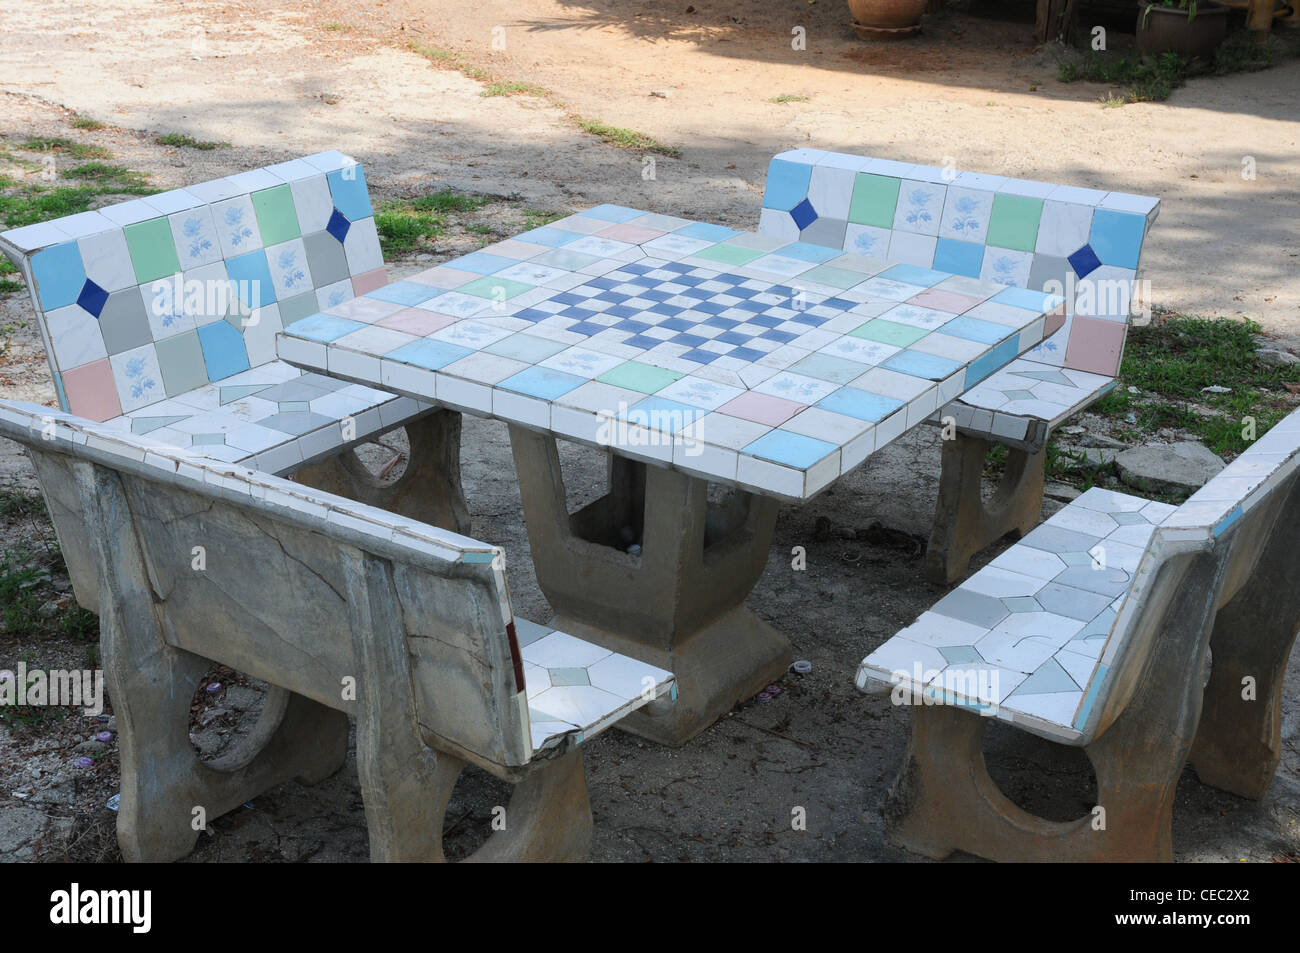 Superbe Tile Covered Concrete Table And Seats With Chess Board, Kanchanaburi,  Thailand   Stock Image